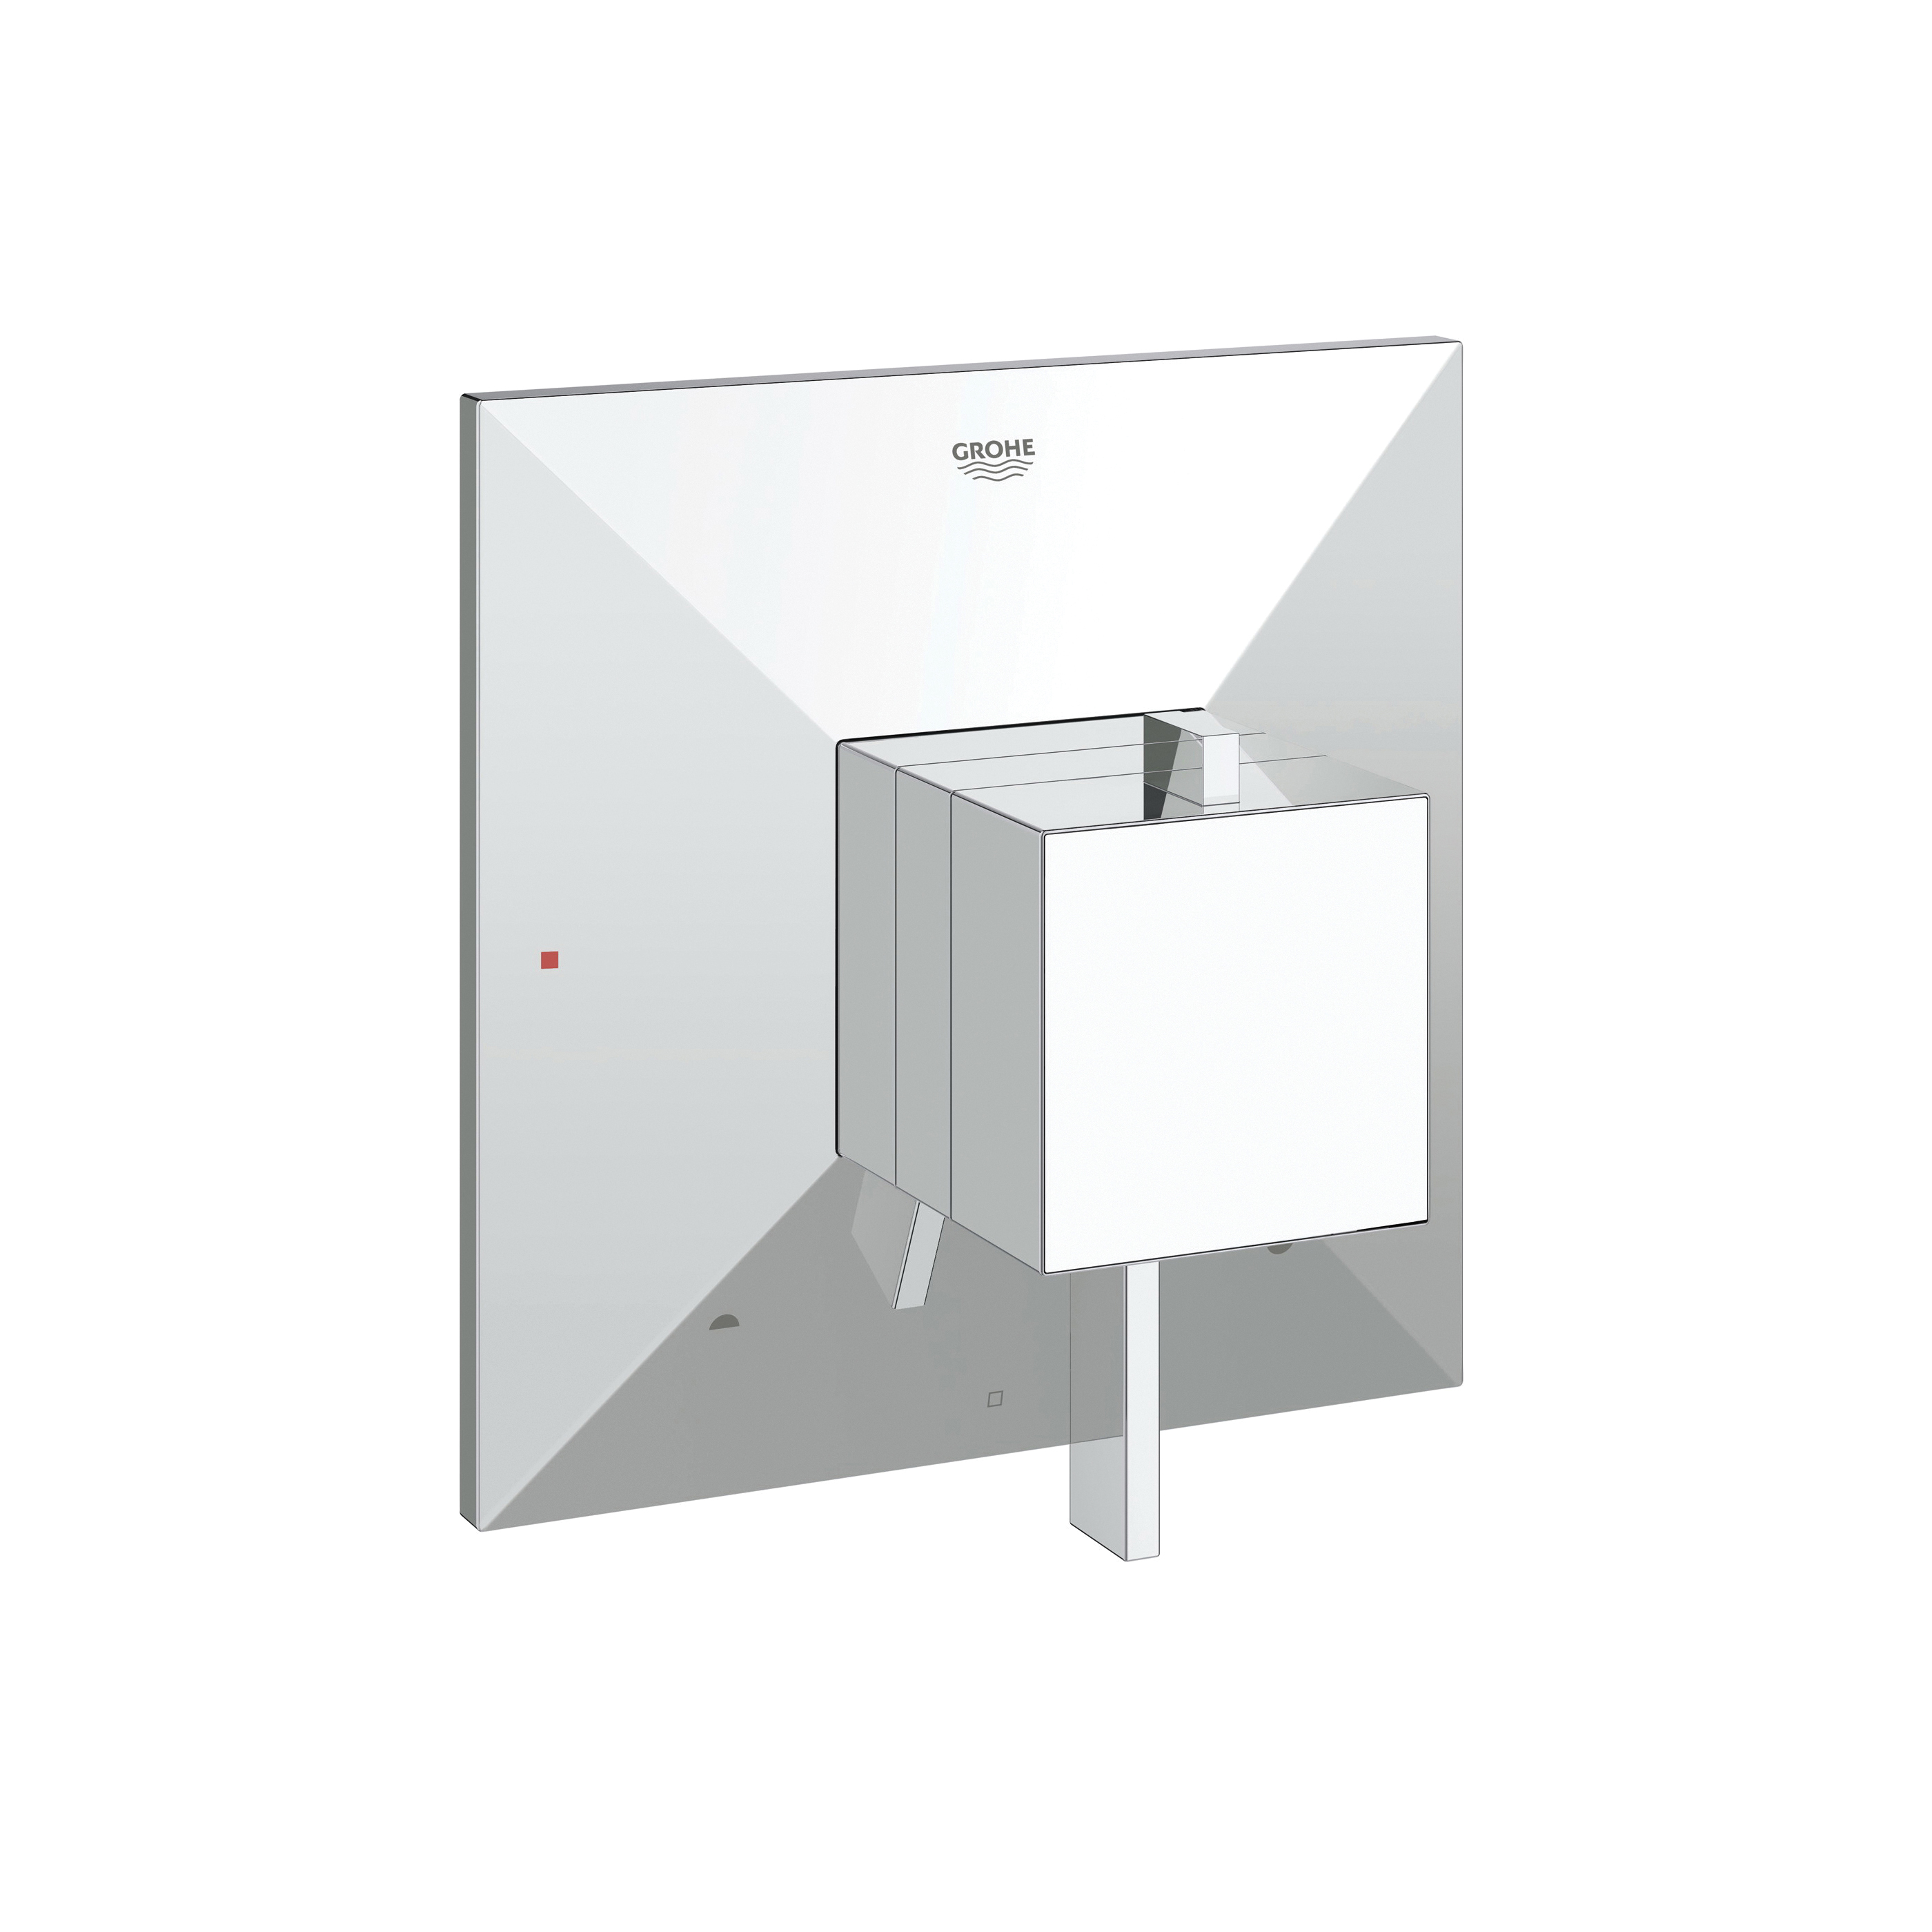 GROHE 19786000 Allure Brilliant Valve Trim, 5.6 gpm Shower, StarLight® Chrome Plated